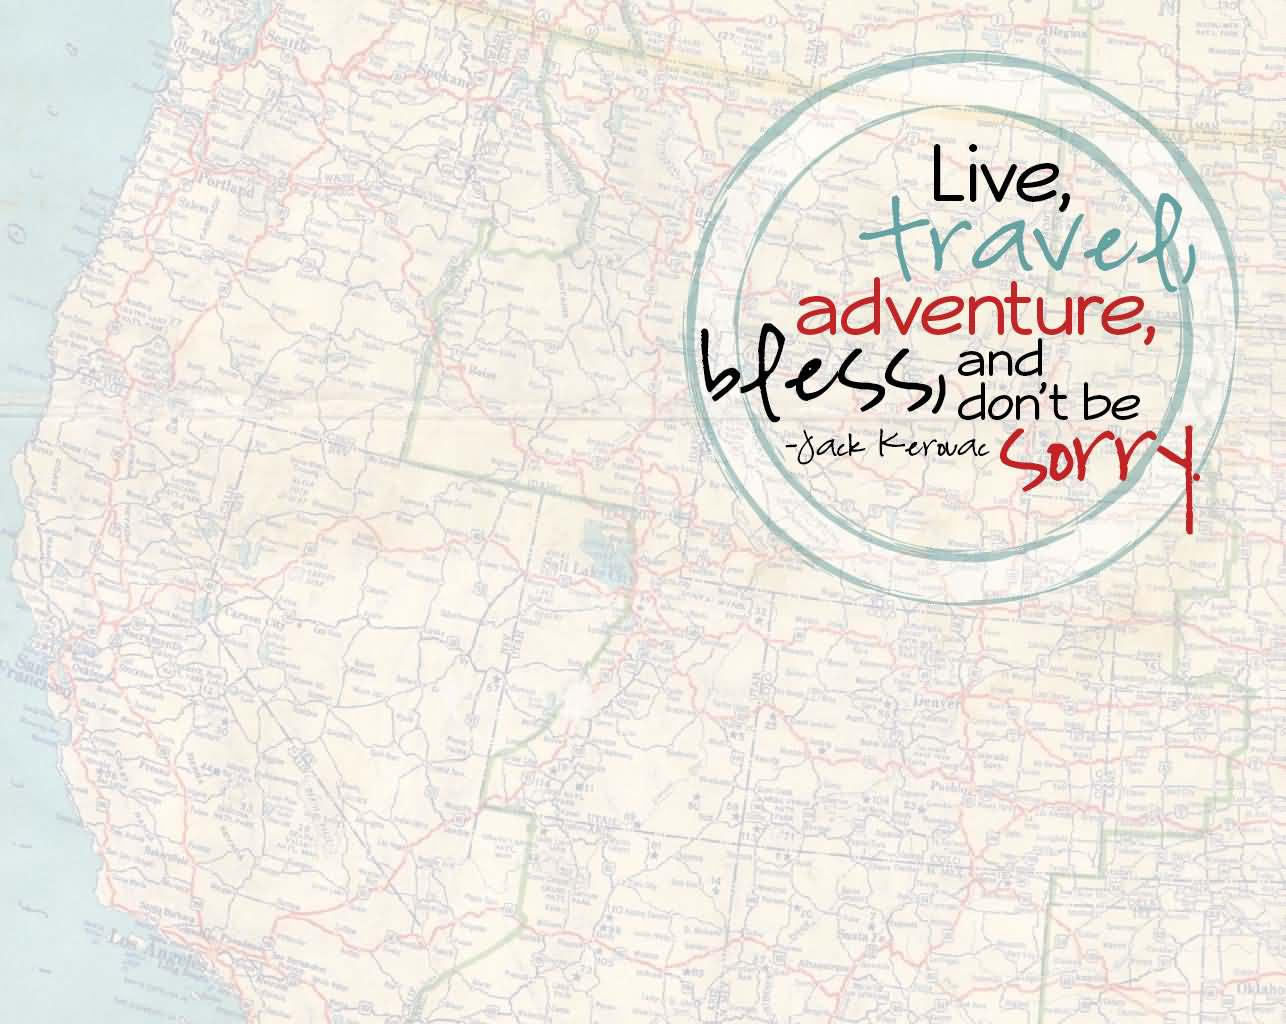 Travel Quotes live, travel adventure, bless and don't be sorry.